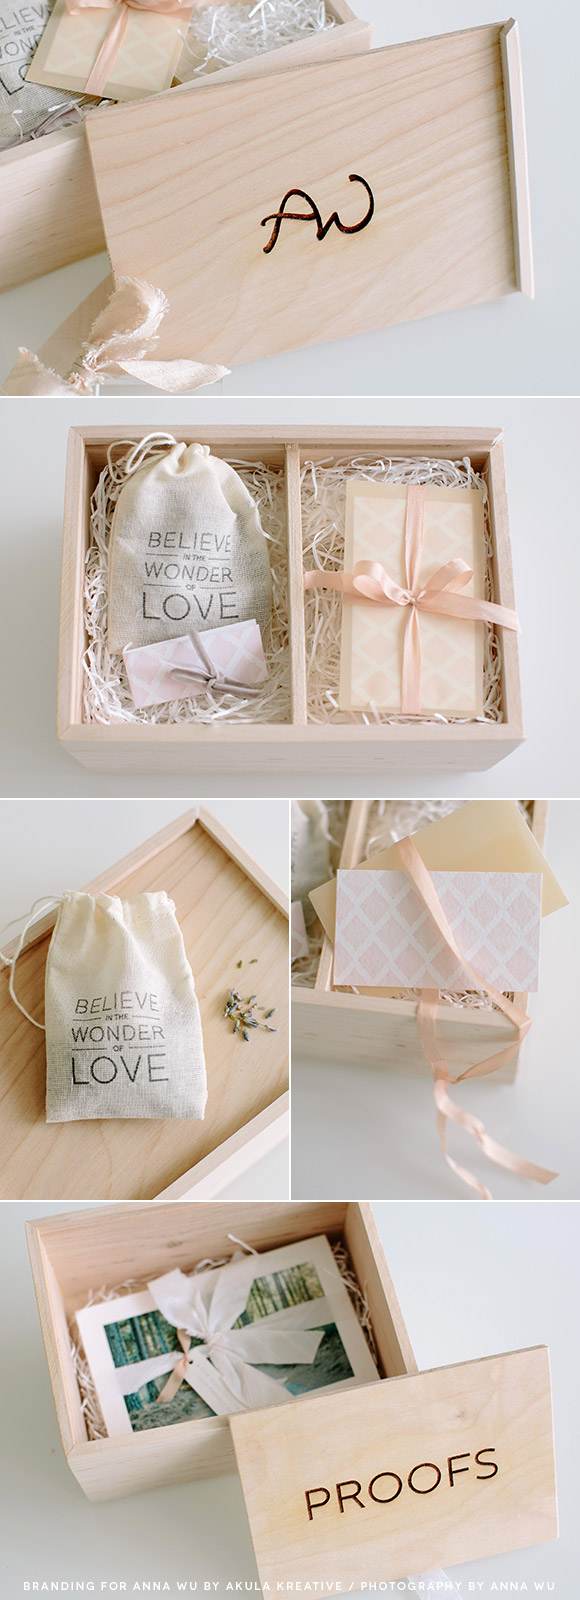 Custom Photography Packaging for Anna Wu // Akula Kreative